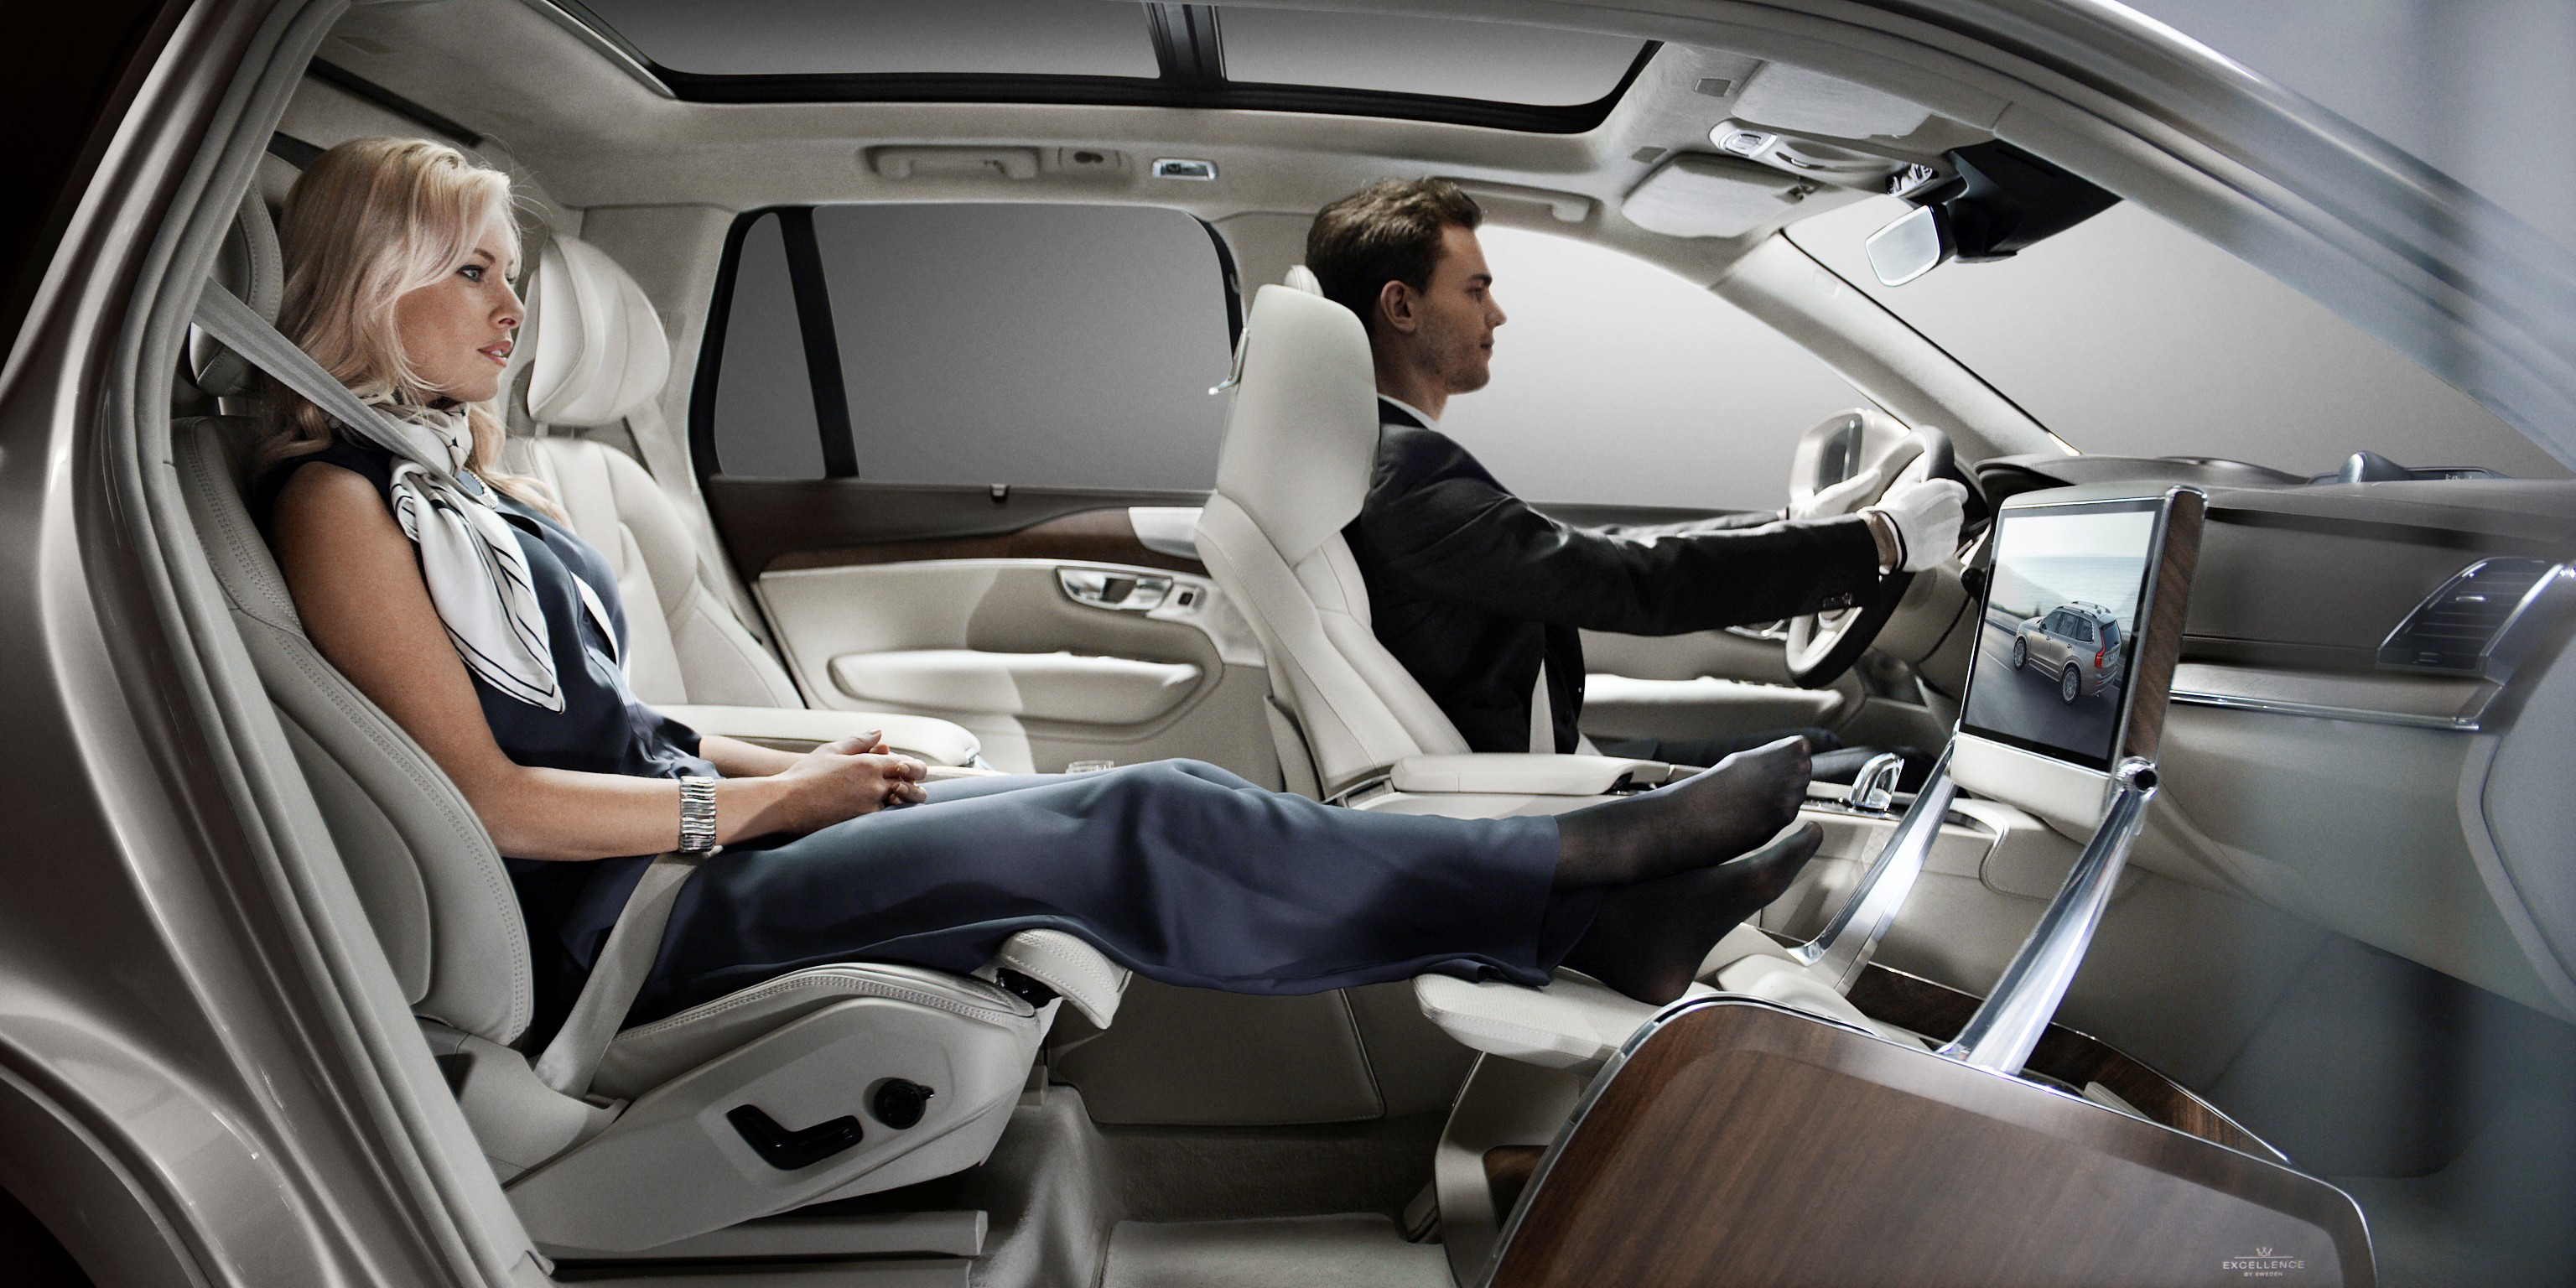 The removal of the front passenger seat allows for full forward vision creating a uniquely spacious environment.